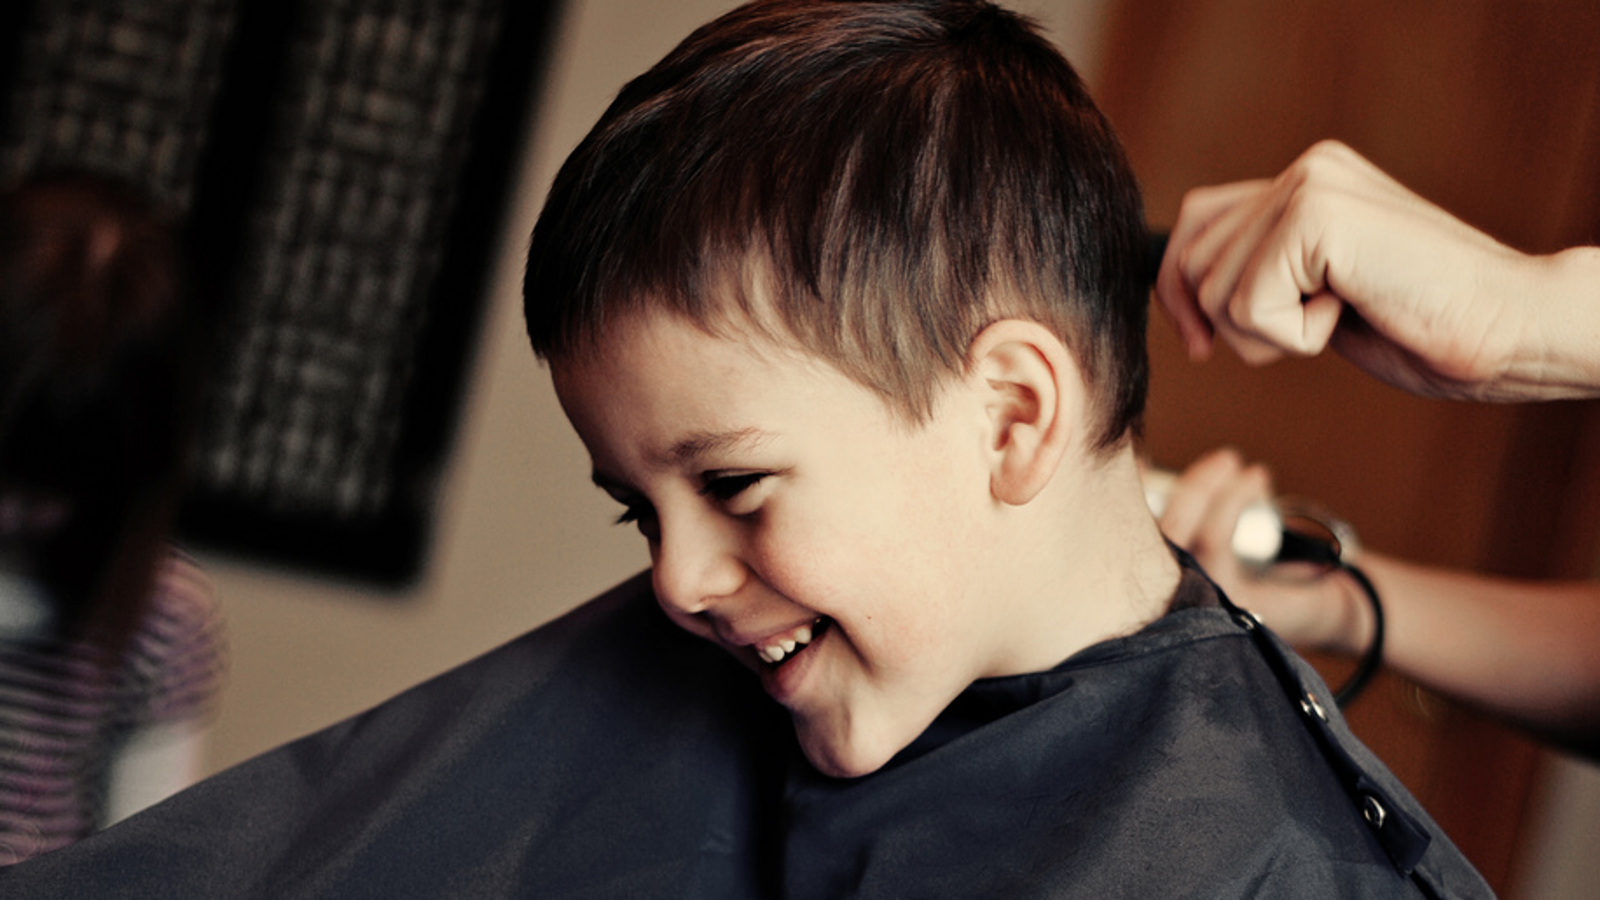 Get A Better Haircut By Saying You Have An Important Event Next Week